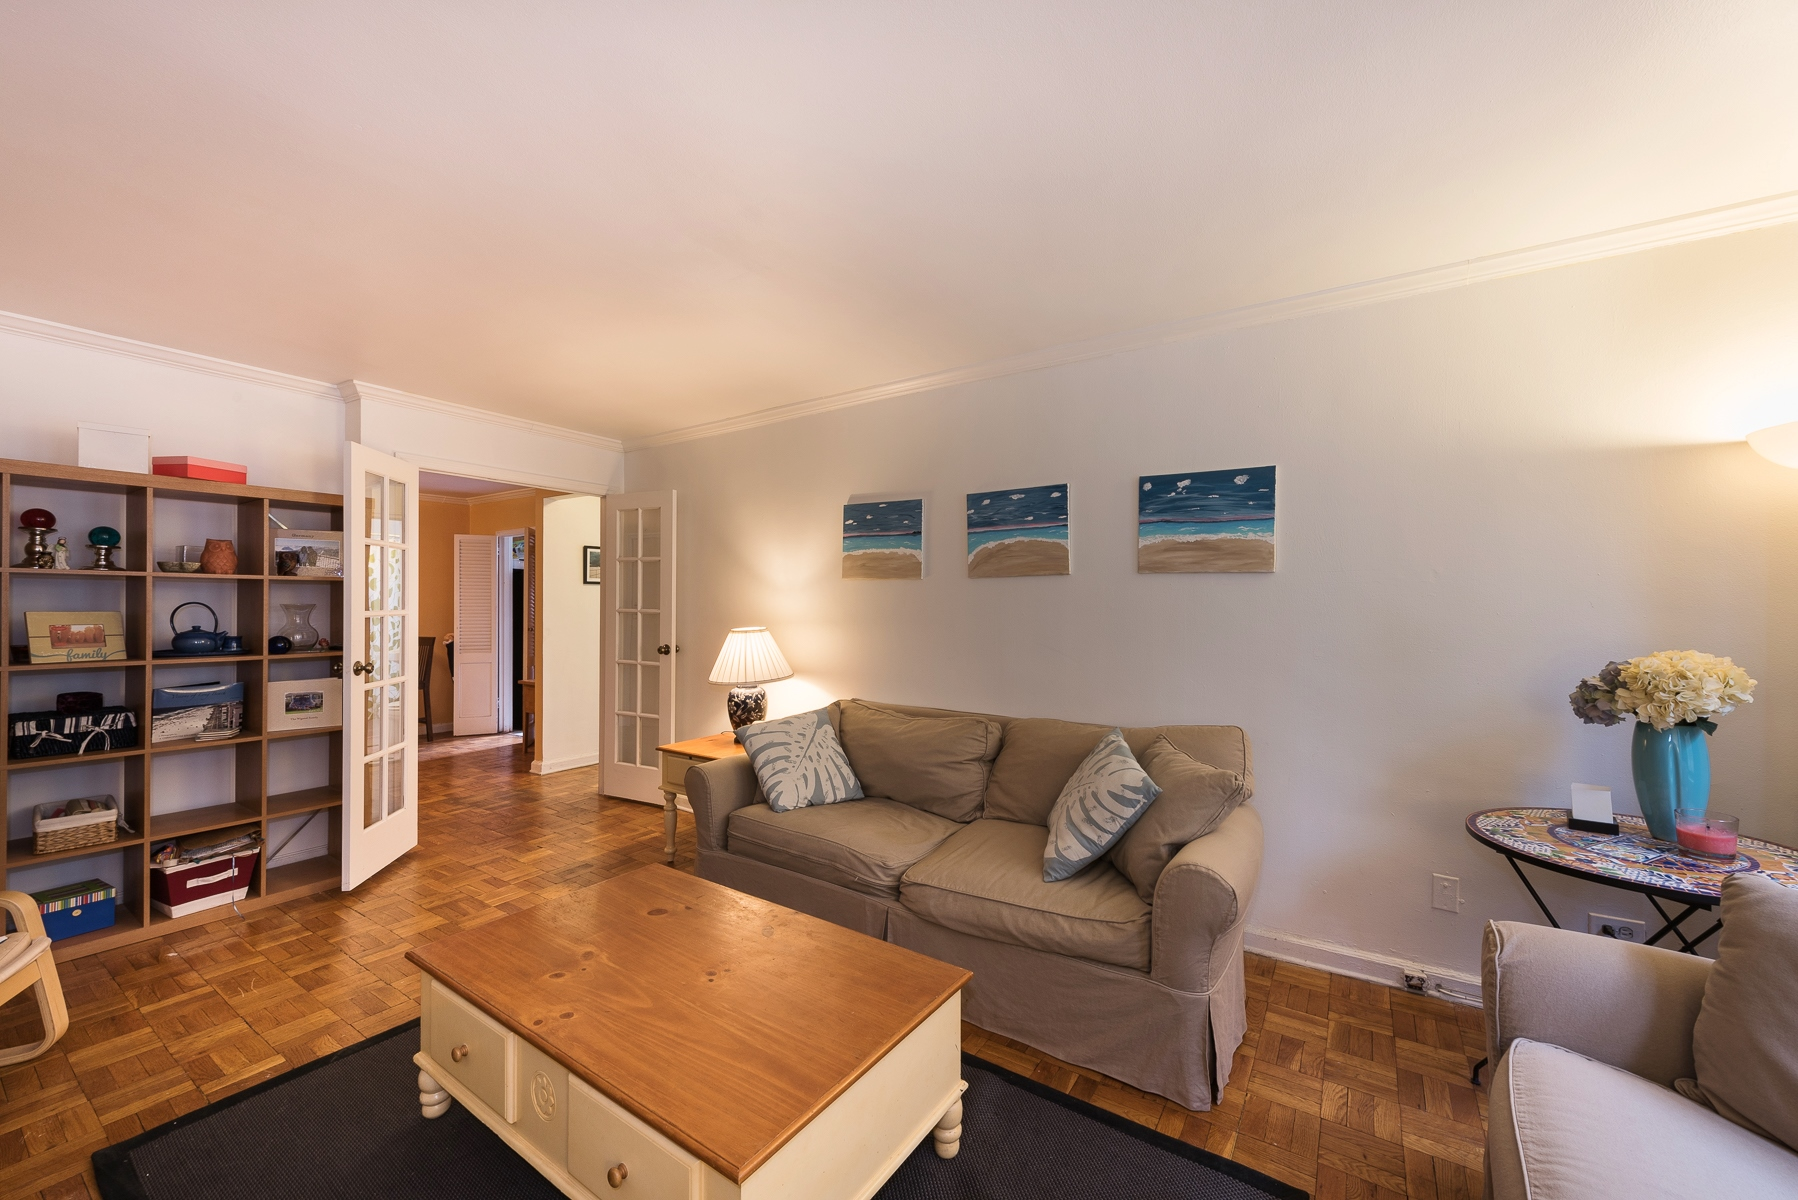 Property For Sale at Beautiful 1 BR Co-op Rental